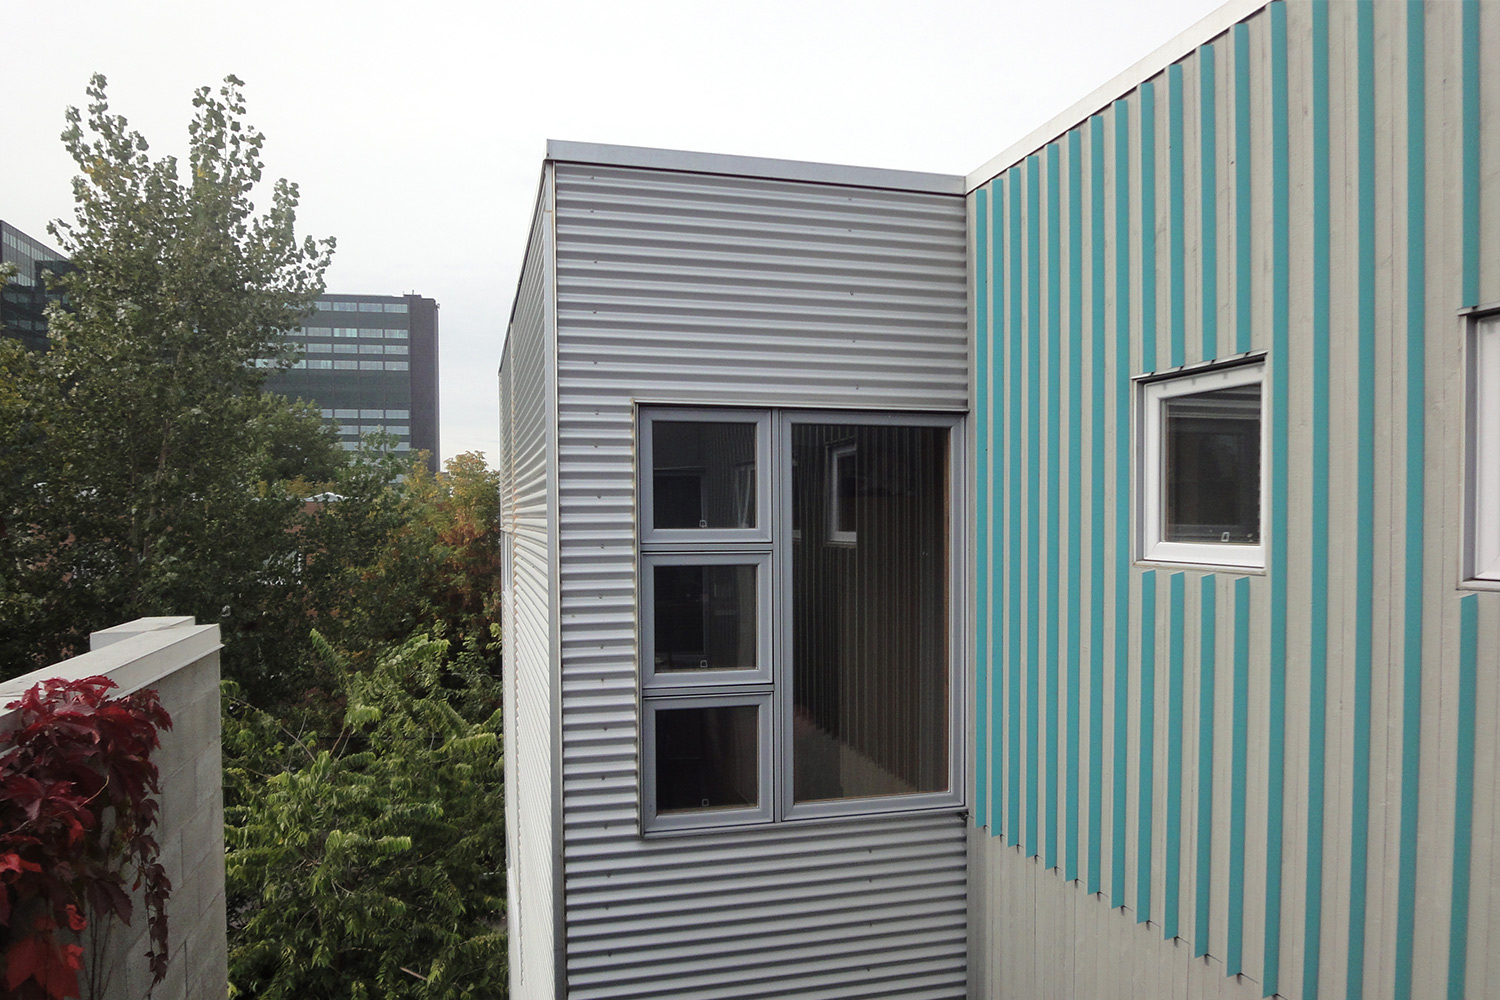 Exterior facade, gray wood siding. Board and batten modern. Turquoise blue painted sticks on one side